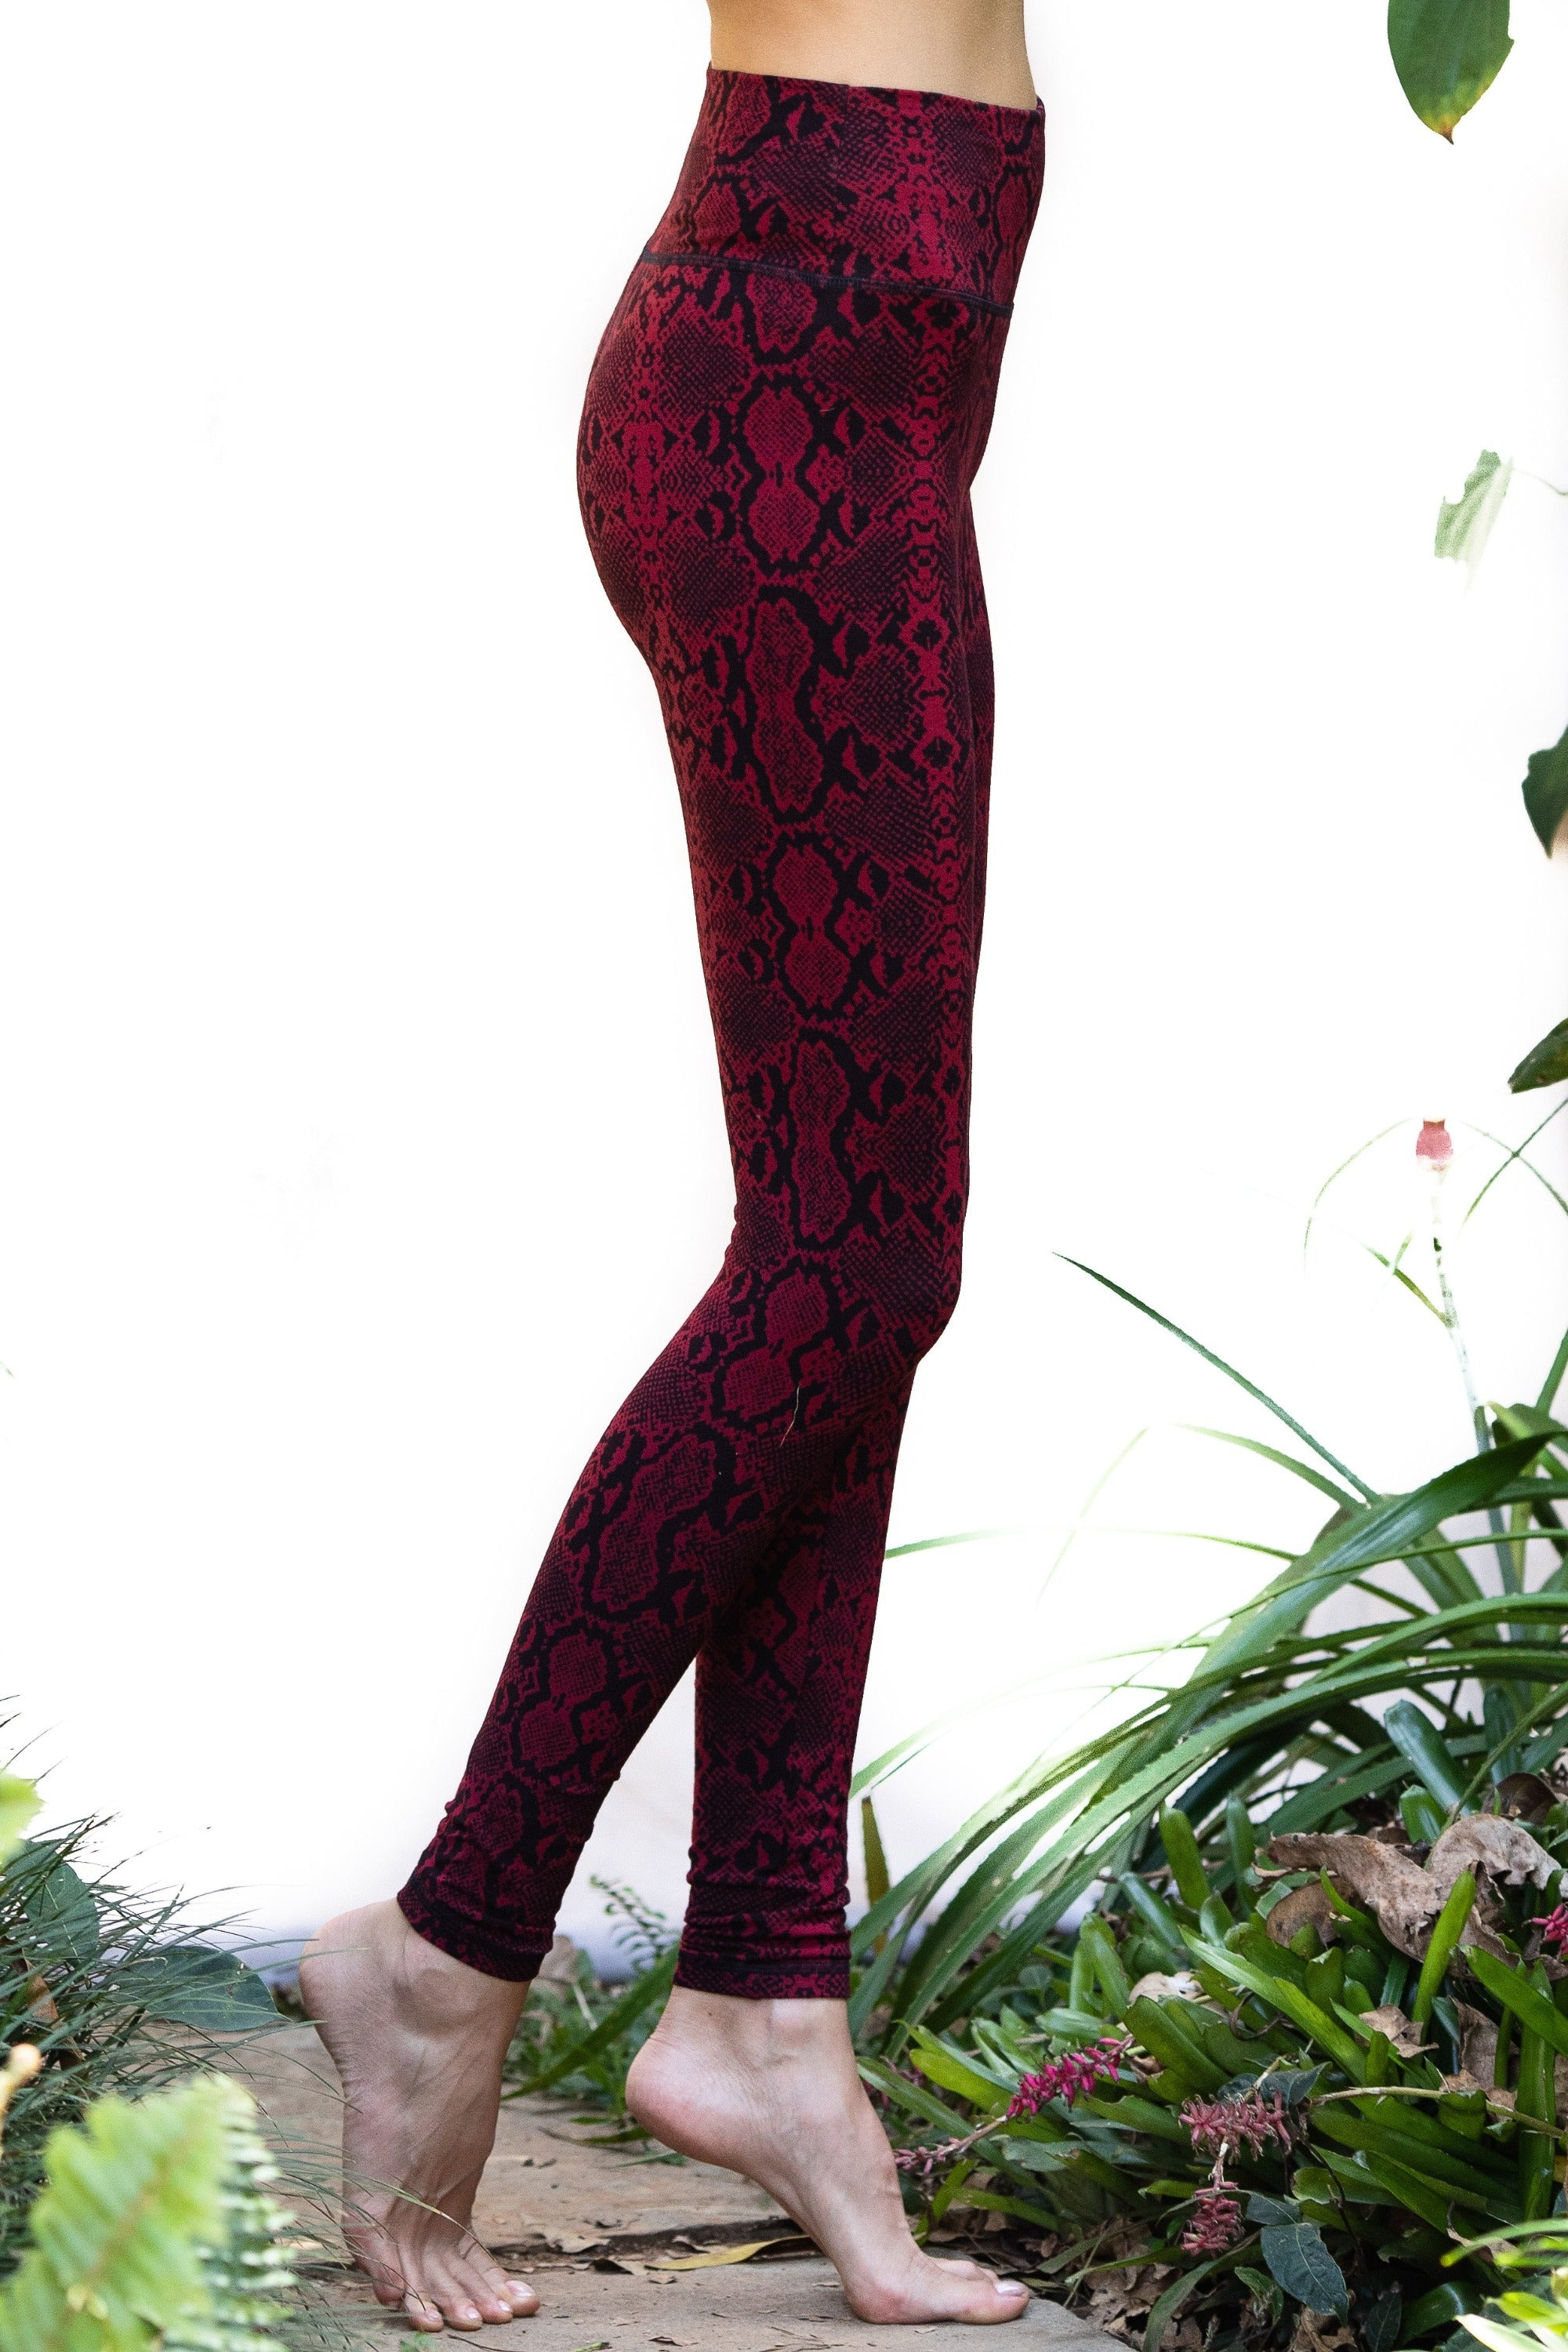 Super High Waist Leggings Tights - Snake Print - FUNKY SIMPLICITY